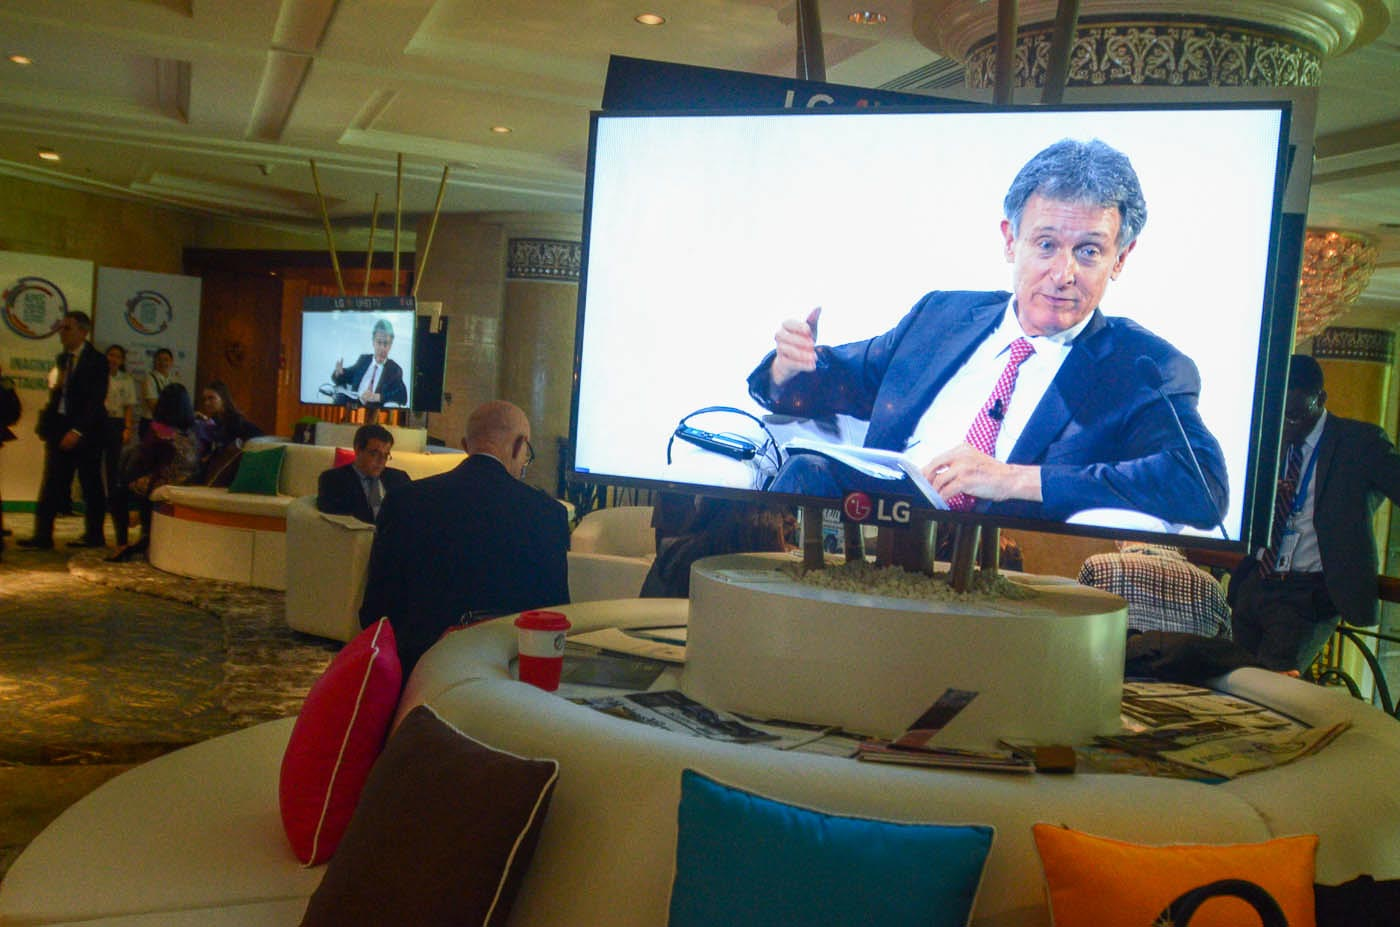 ACCESS. A live broadcast feed of an APEC event at the lobby of the Makati Shangrila Hotel.